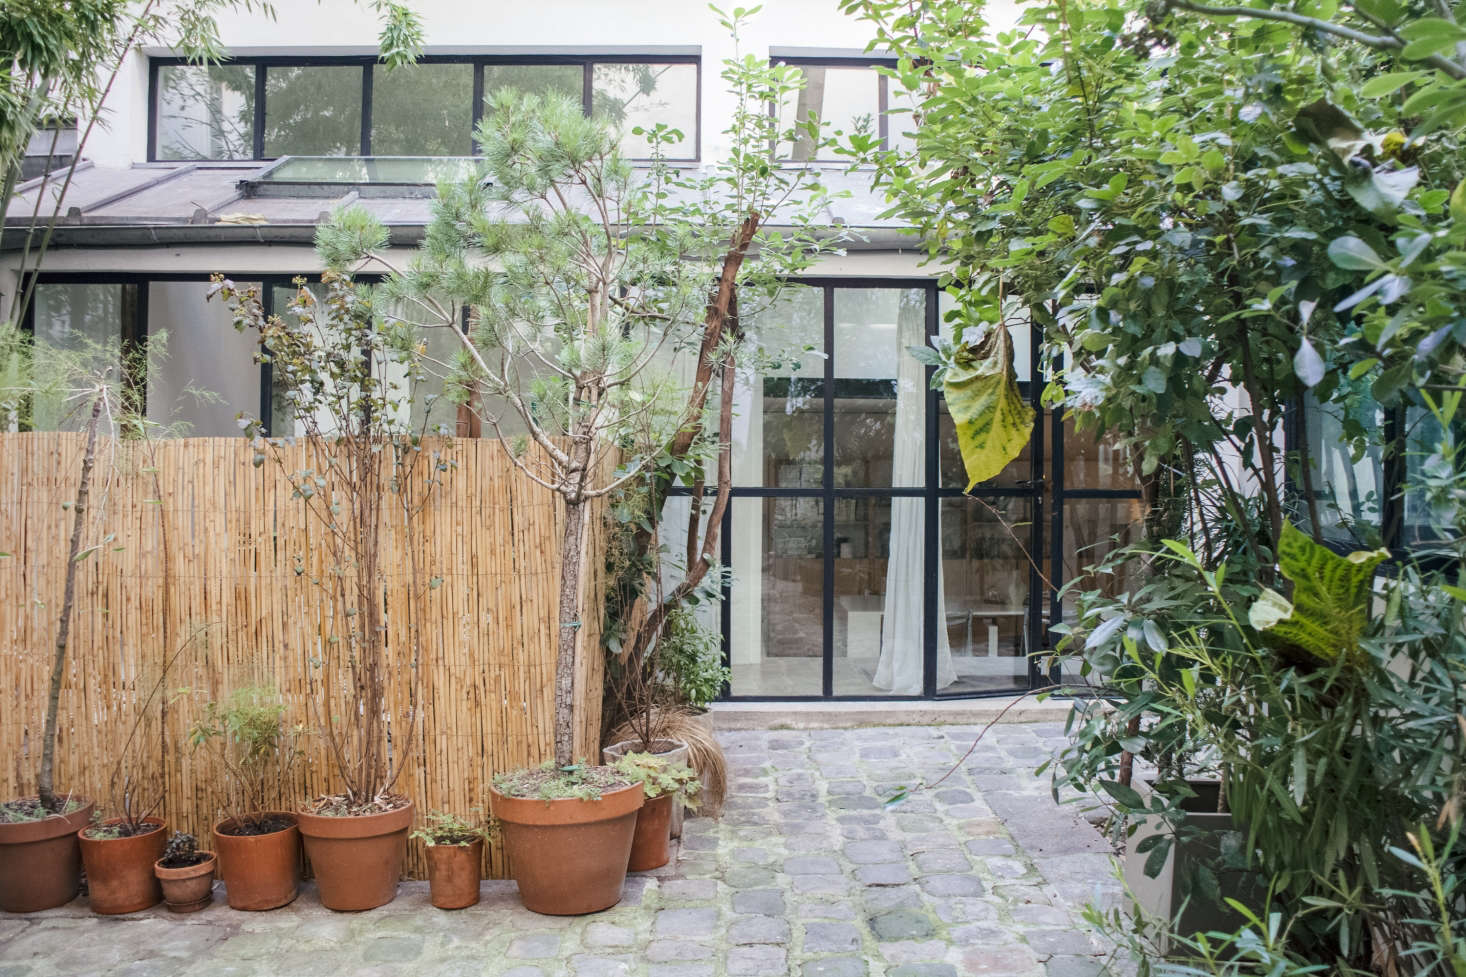 The loft, in a 90s building by commercial architects Fassio-Viaud, once functioned as a counterfeit handbag workshop. Lucile and Michel added floor-to-ceiling curtains and potted plants for privacy.